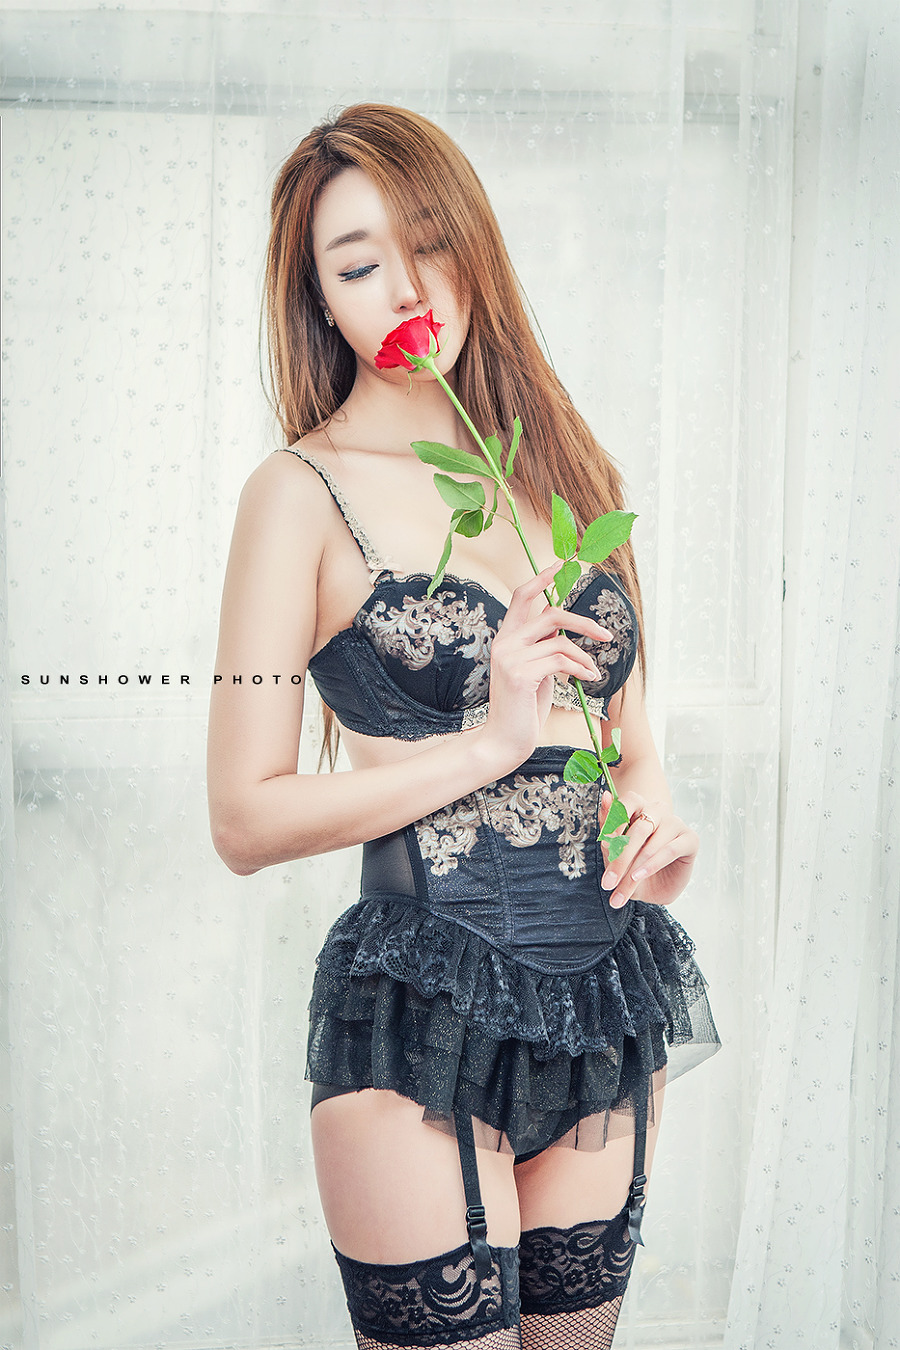 hot curved Korean lingerie girl